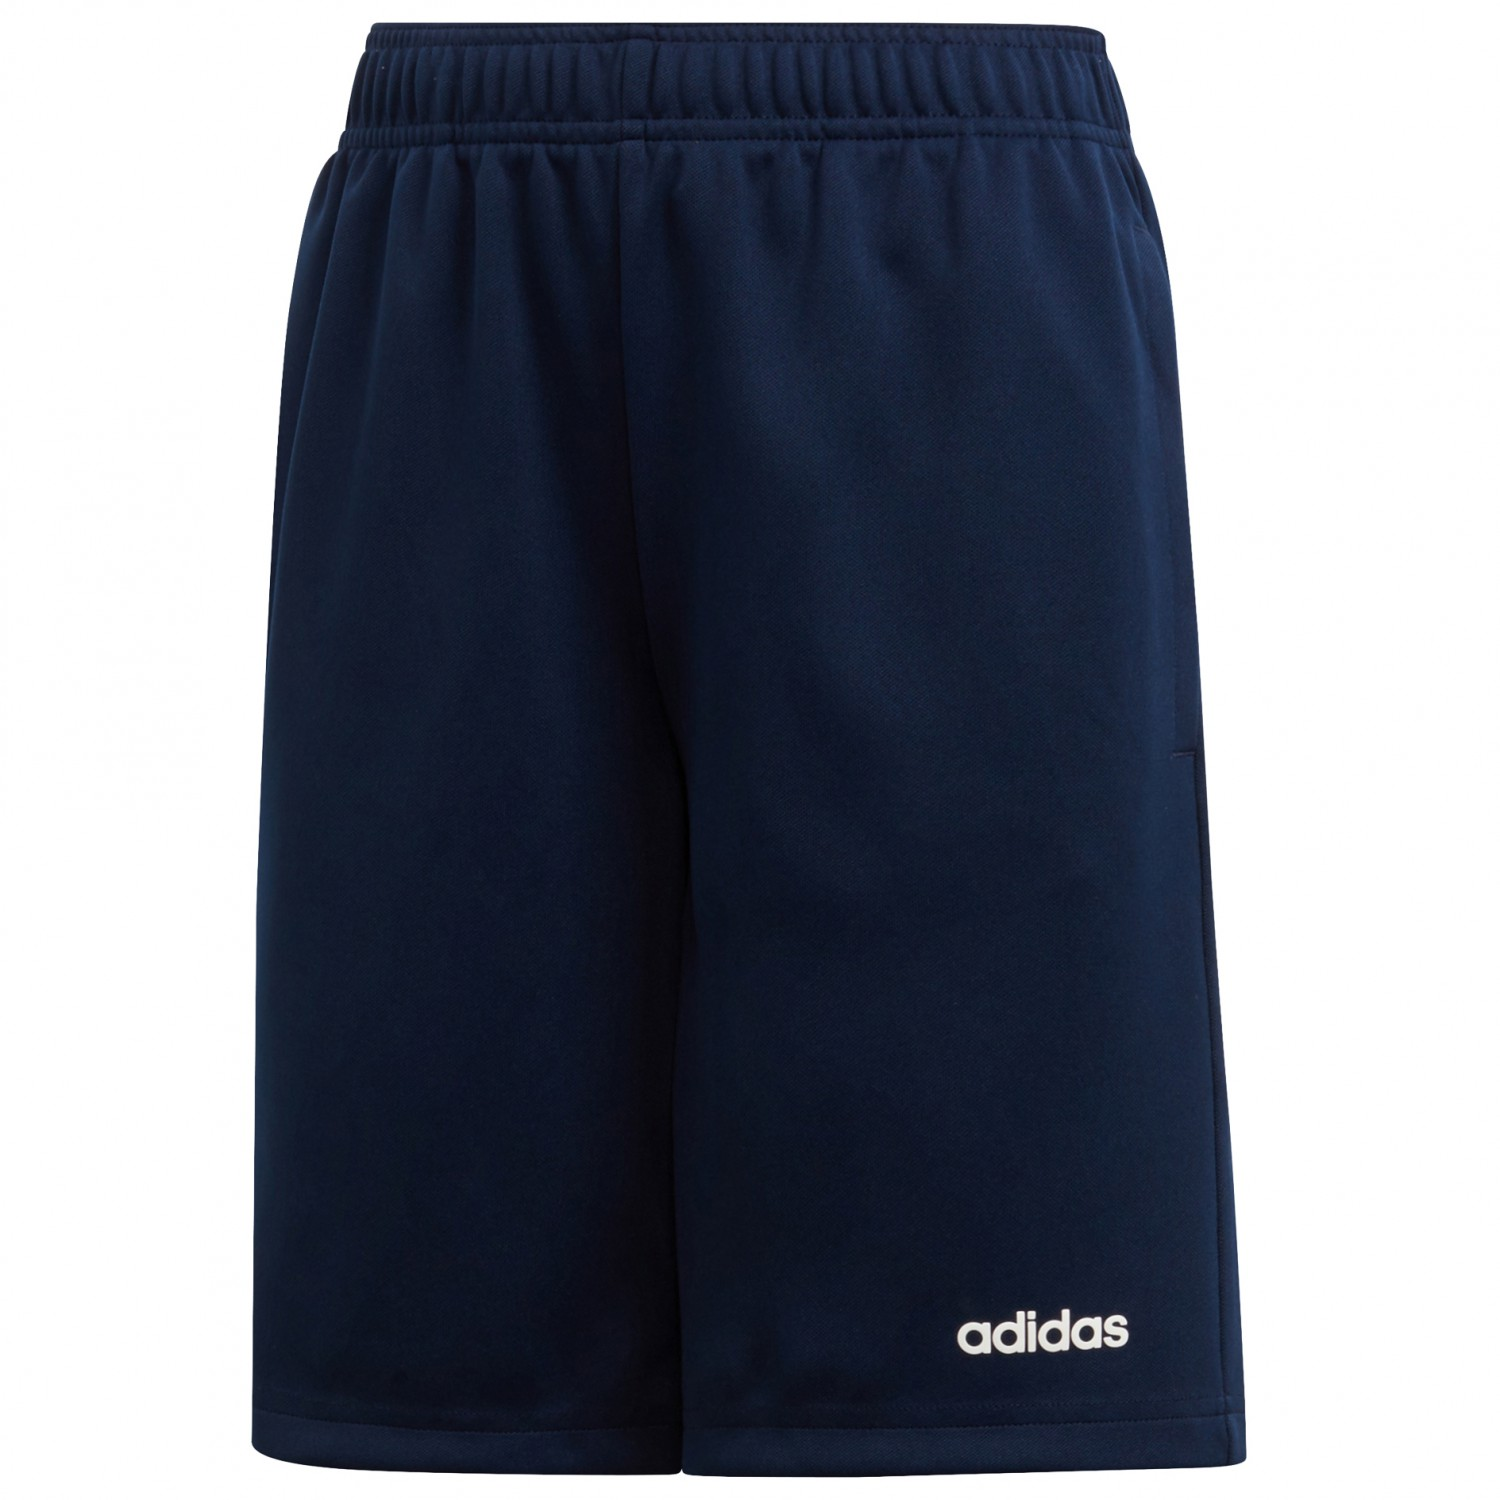 d0ecfd2ed24071 Adidas Train Linear Knitted Shorts - Badehose Jungen online kaufen ...